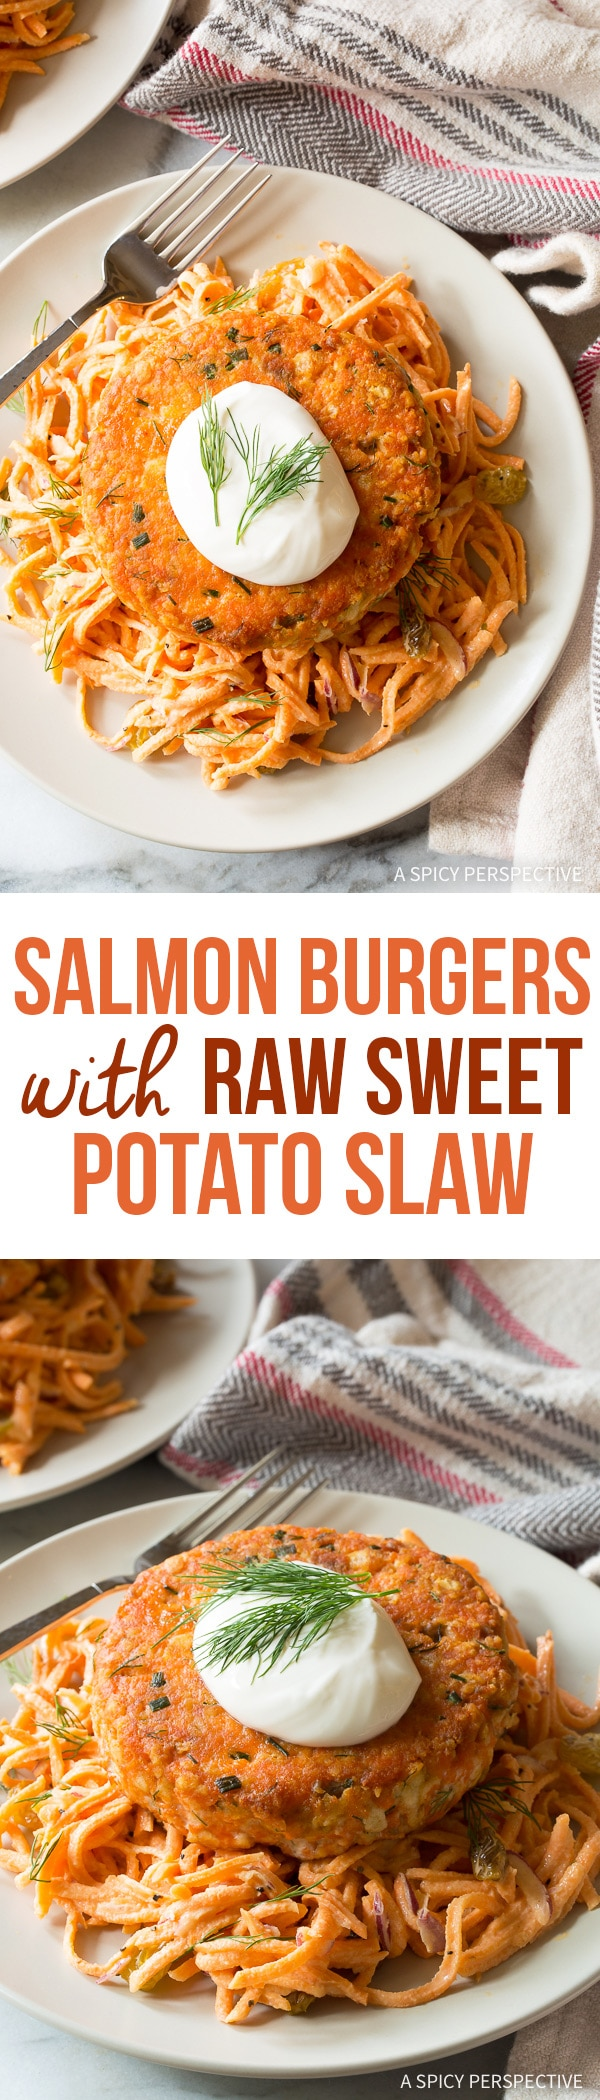 Zesty Salmon Burgers with Sweet Potato Slaw Recipe for Spring!